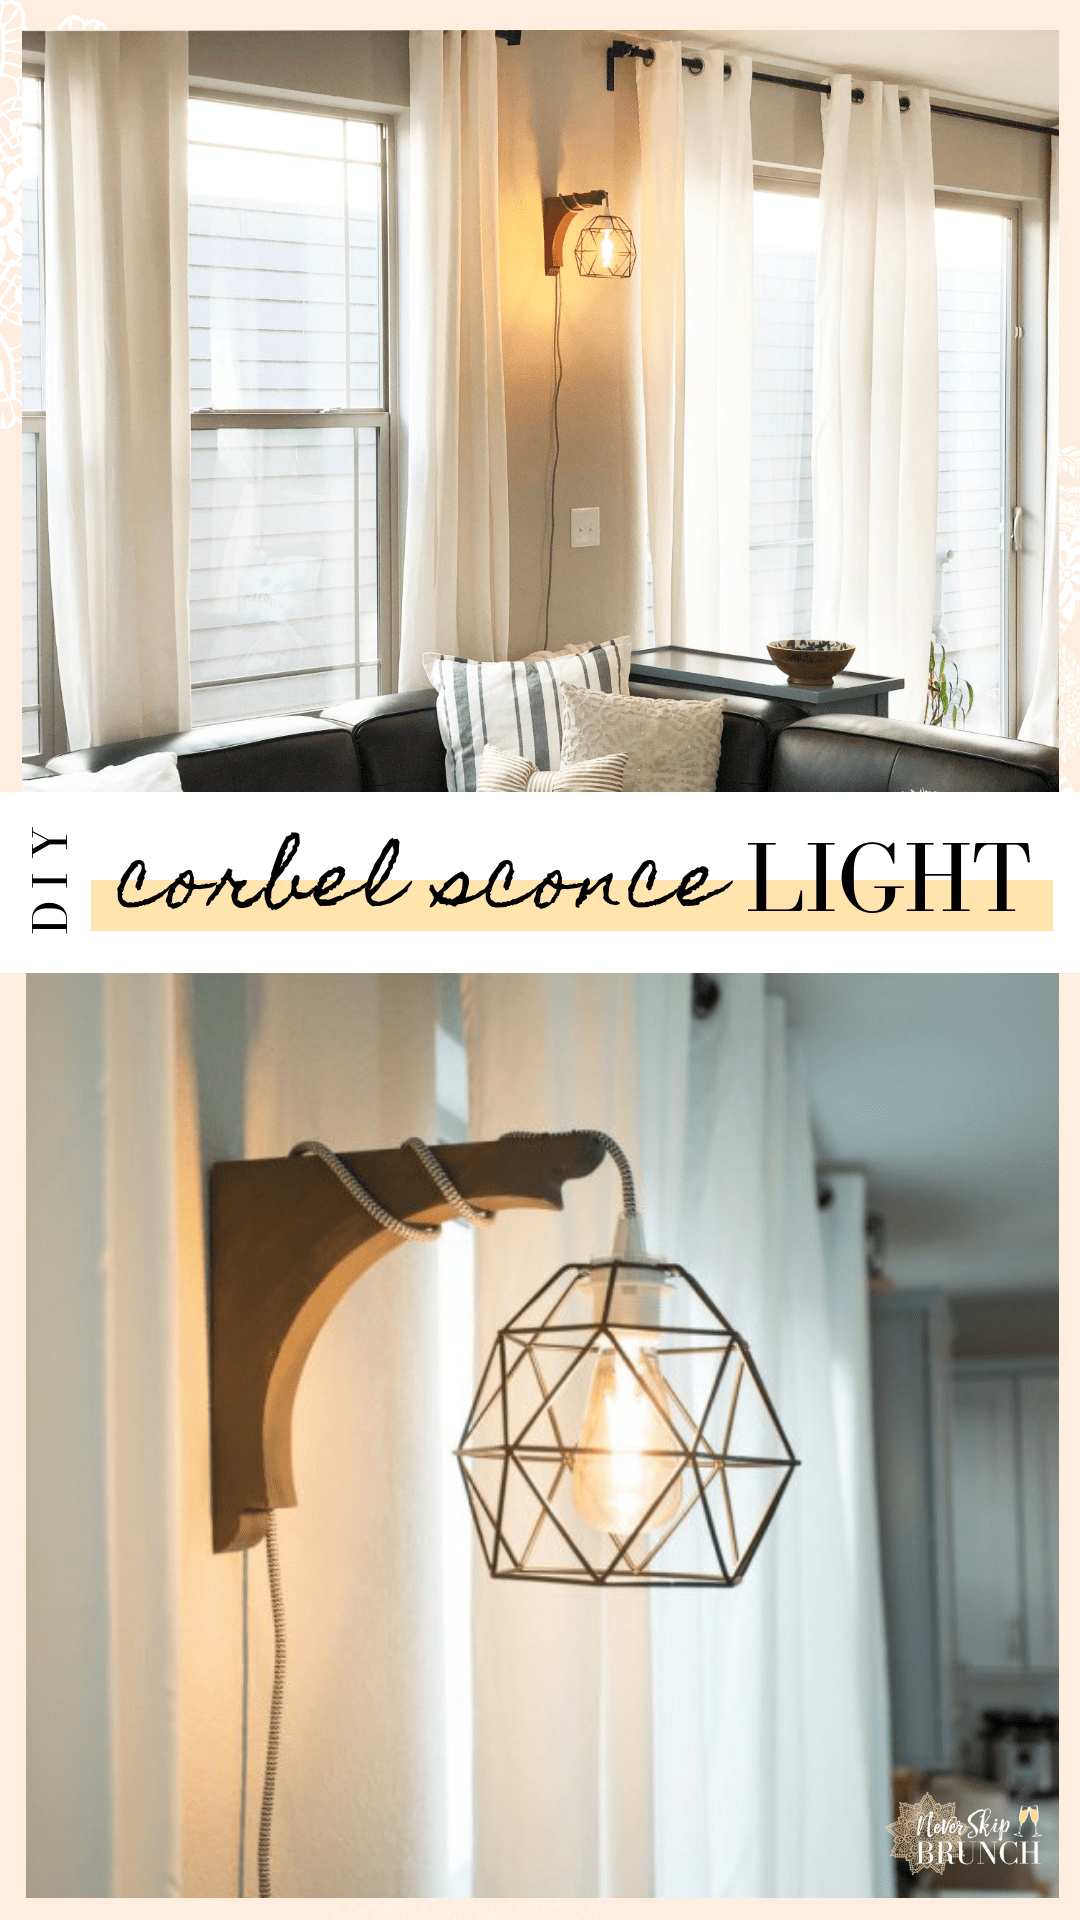 Super Easy Corbel Sconce Light Diy This Diy Corbel Light Does Not Require A Drill You Can Build This Industr In 2020 Sconce Lighting Bedroom Lighting Diy Home Decor